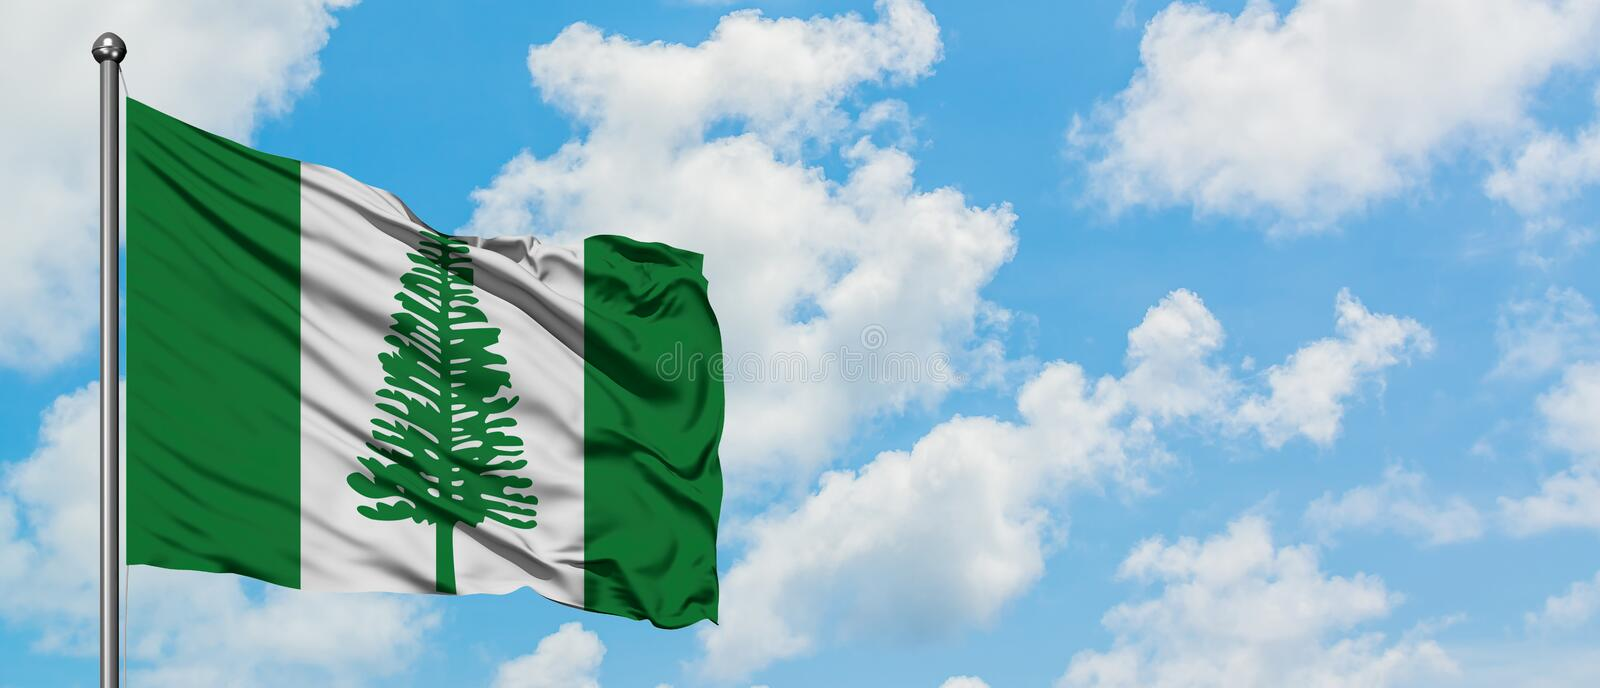 Norfolk Island flag waving in the wind against white cloudy blue sky. Diplomacy concept, international relations.  stock photos